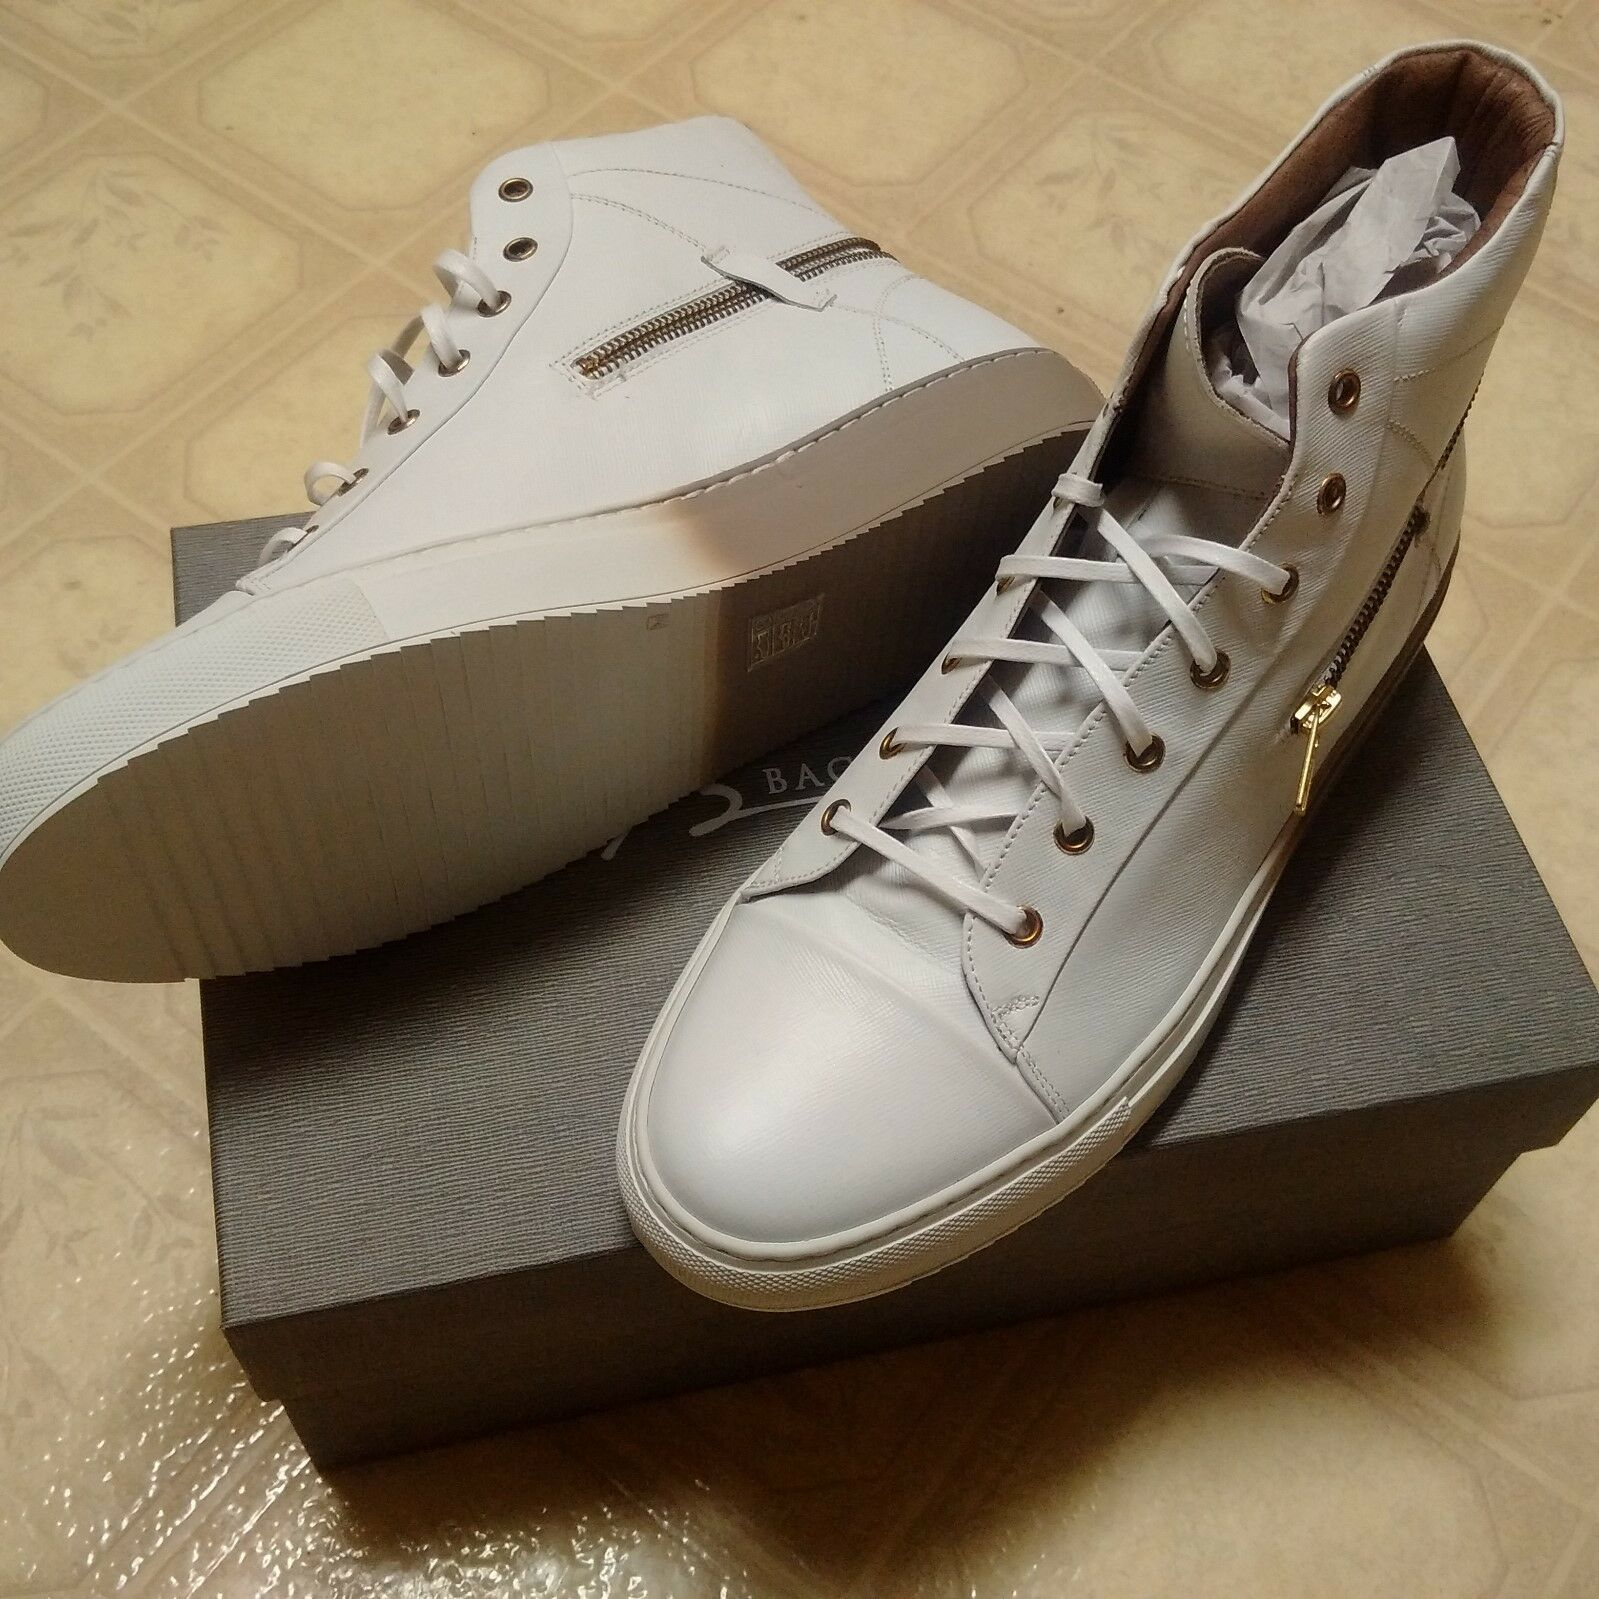 Bacco Bucci White Leather High Top Sneakers. Made in Italy SIze 13 US Teo